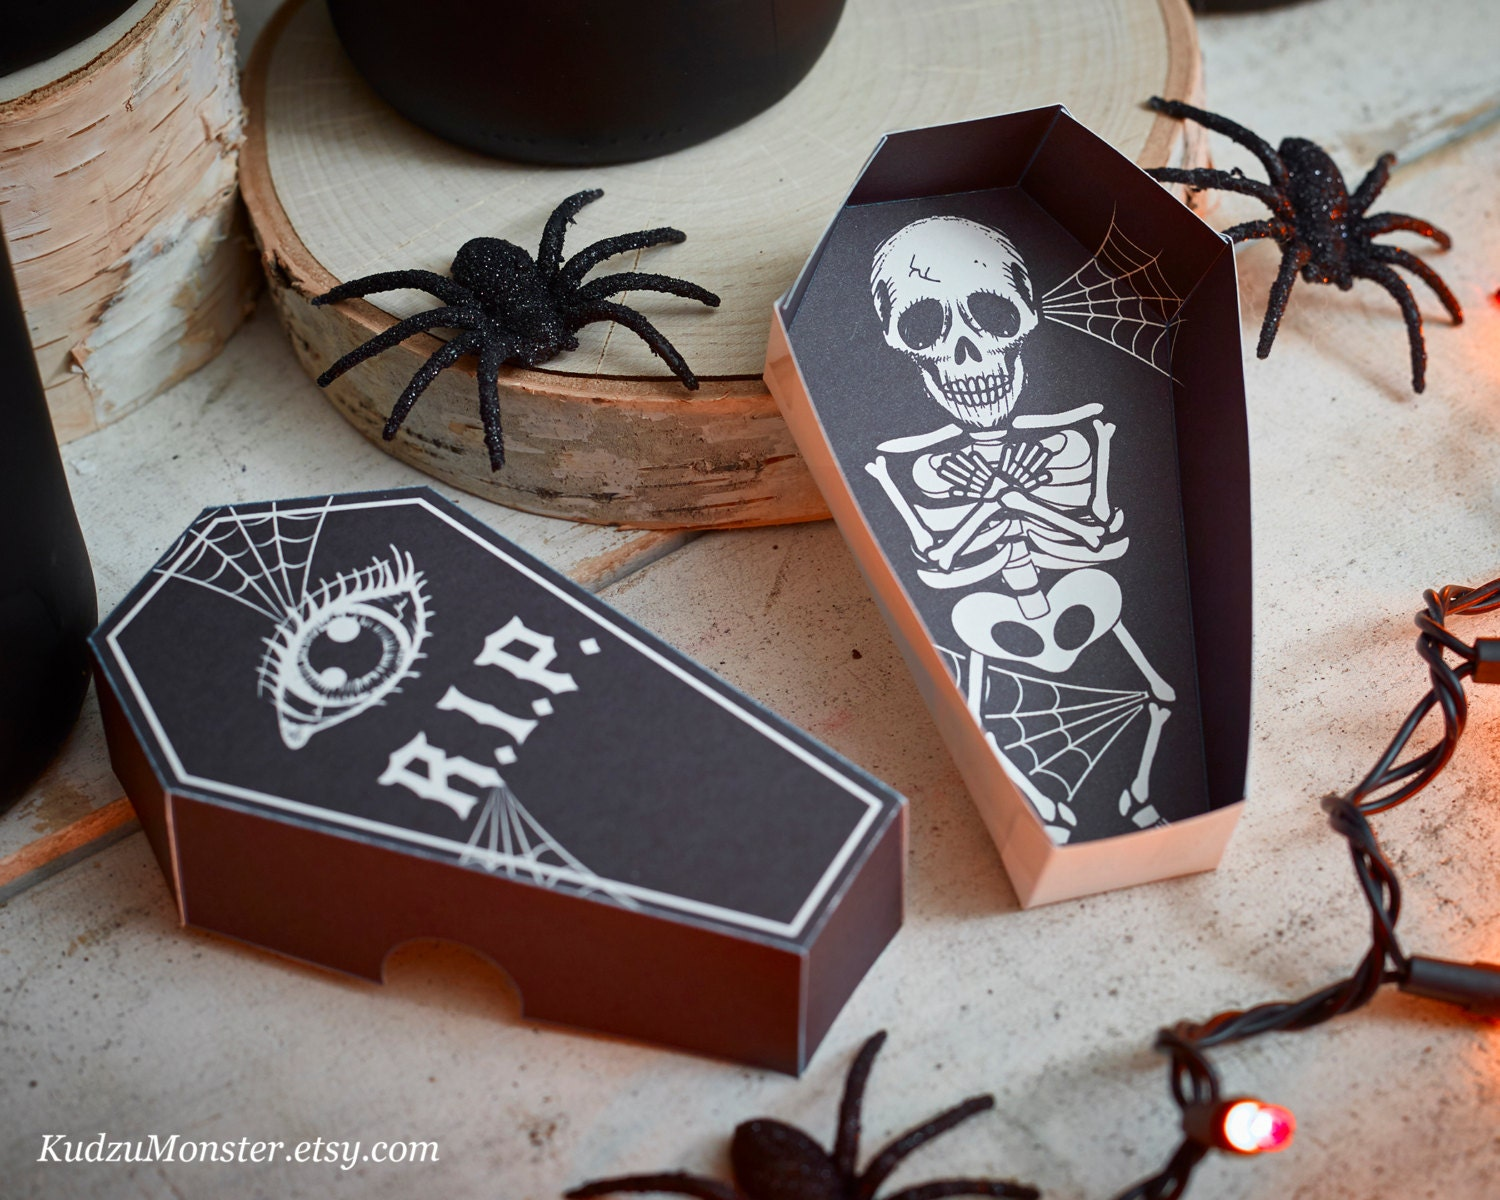 Halloween printable coffin party favor boxes DIY containers